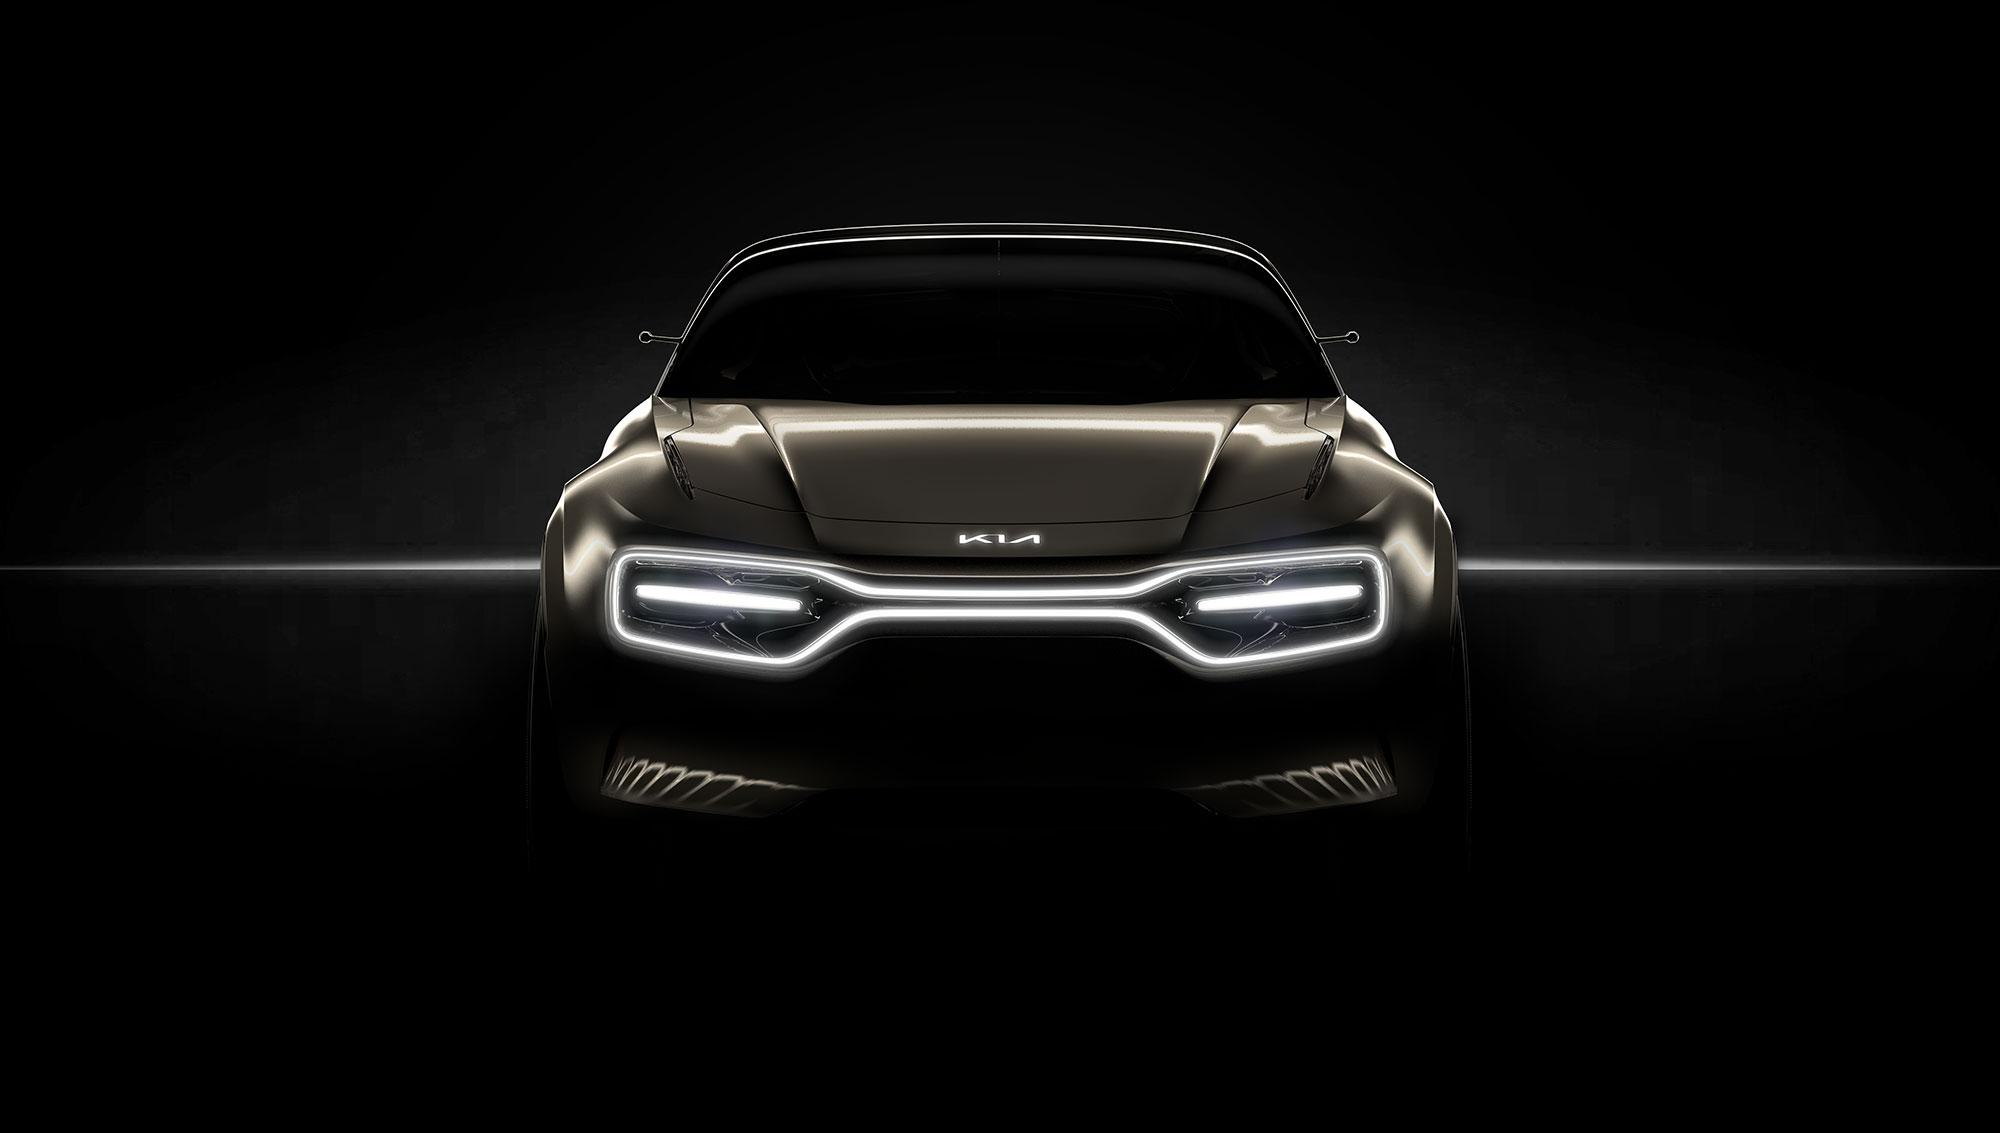 2019 Kia Performance EV Concept